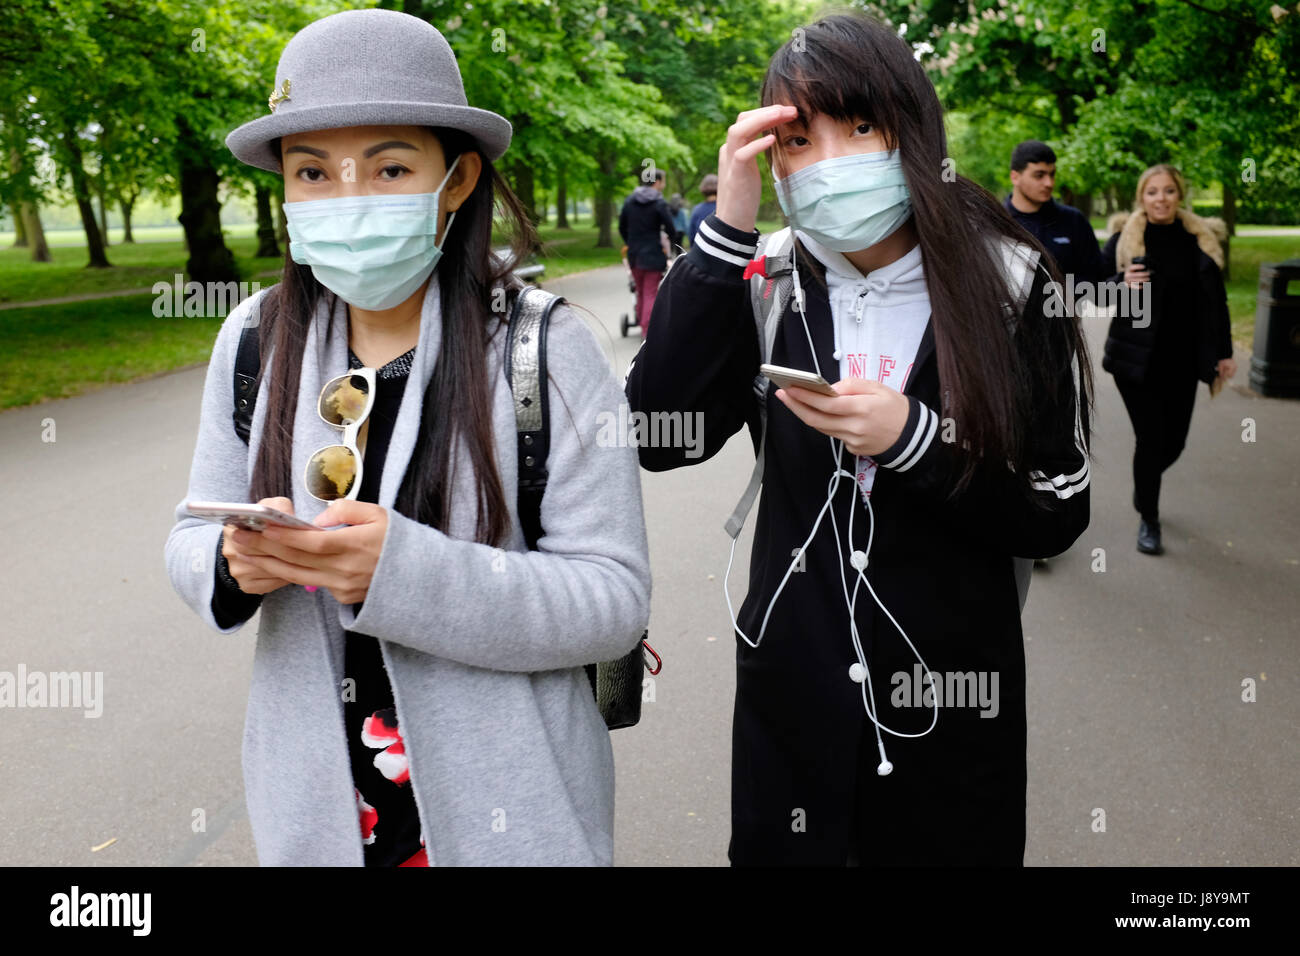 Two young Asian women wearing pollution face masks in a London Park, England, UK. - Stock Image